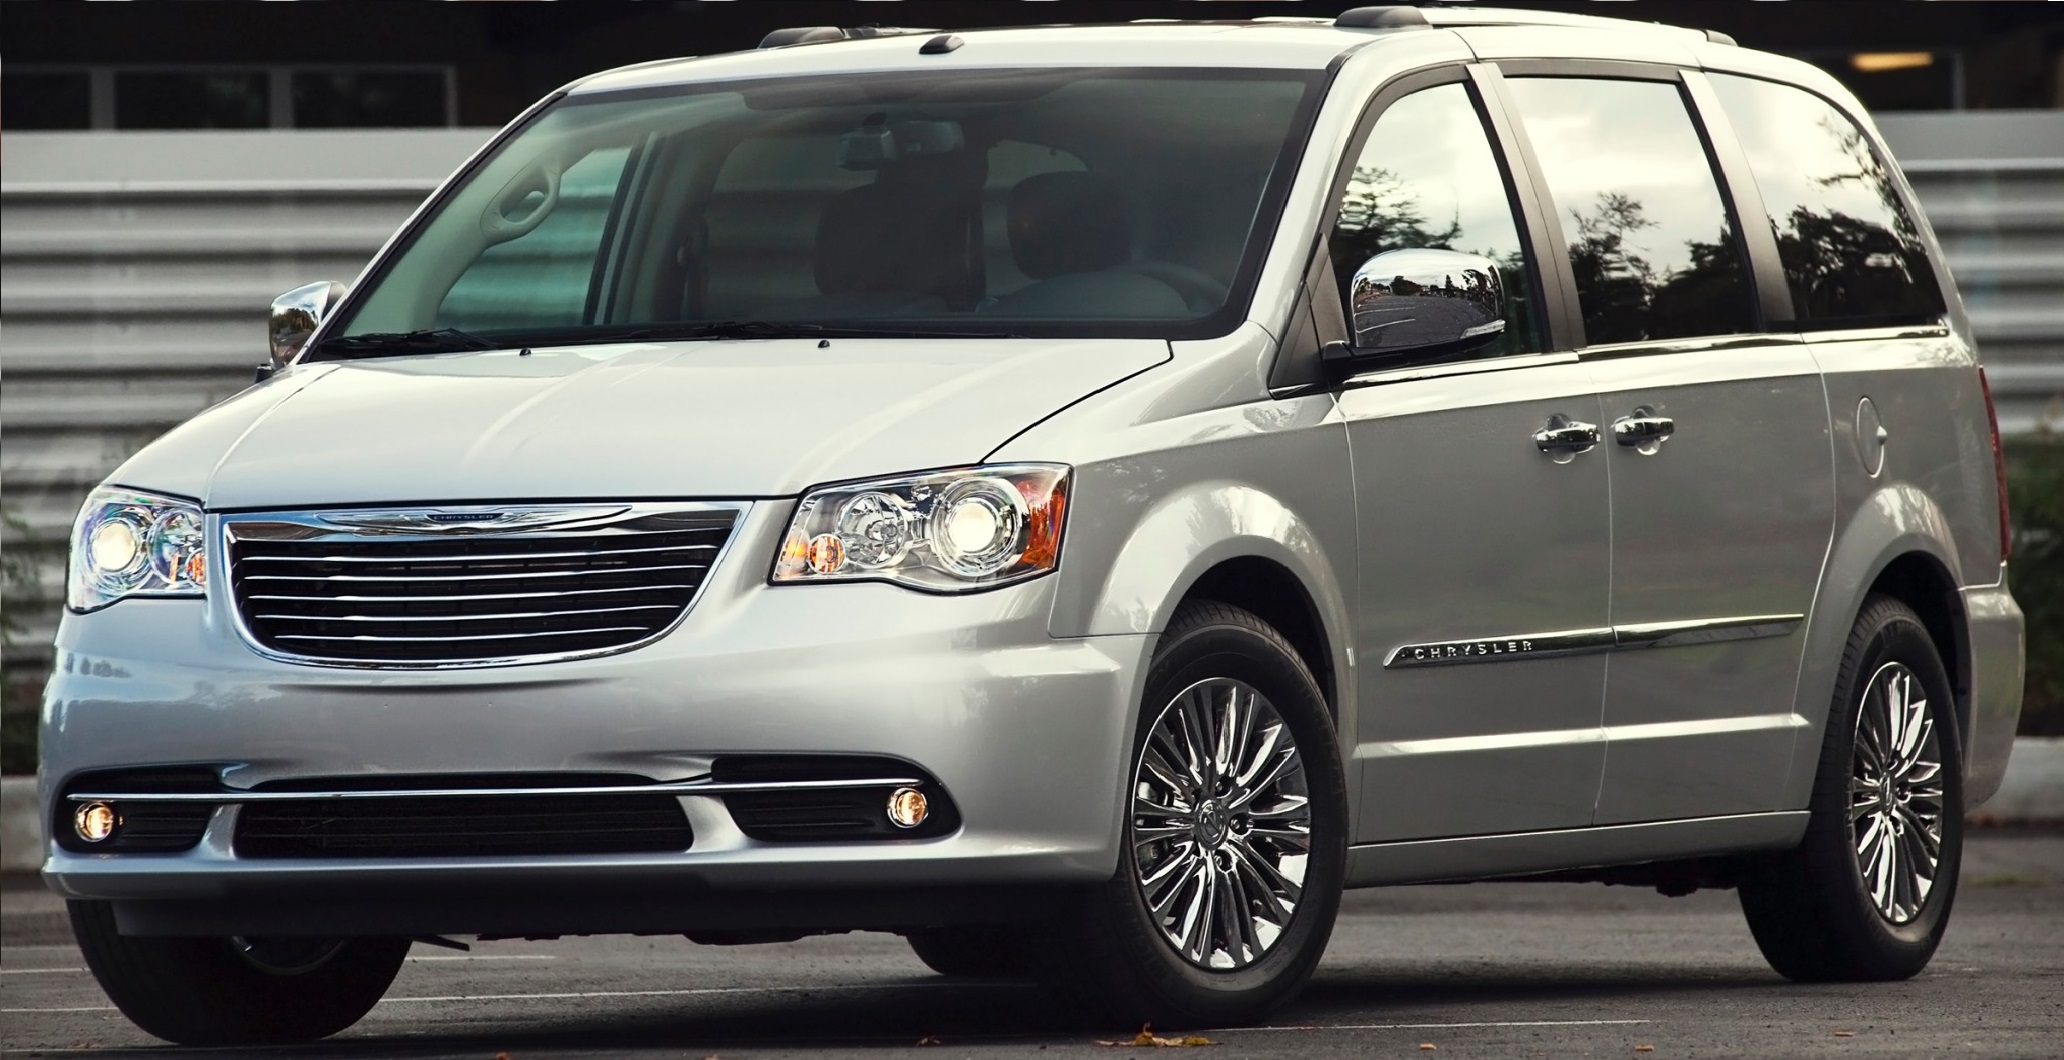 Used Minivans For Sale Near Me >> Lovely Used Minivans | used cars